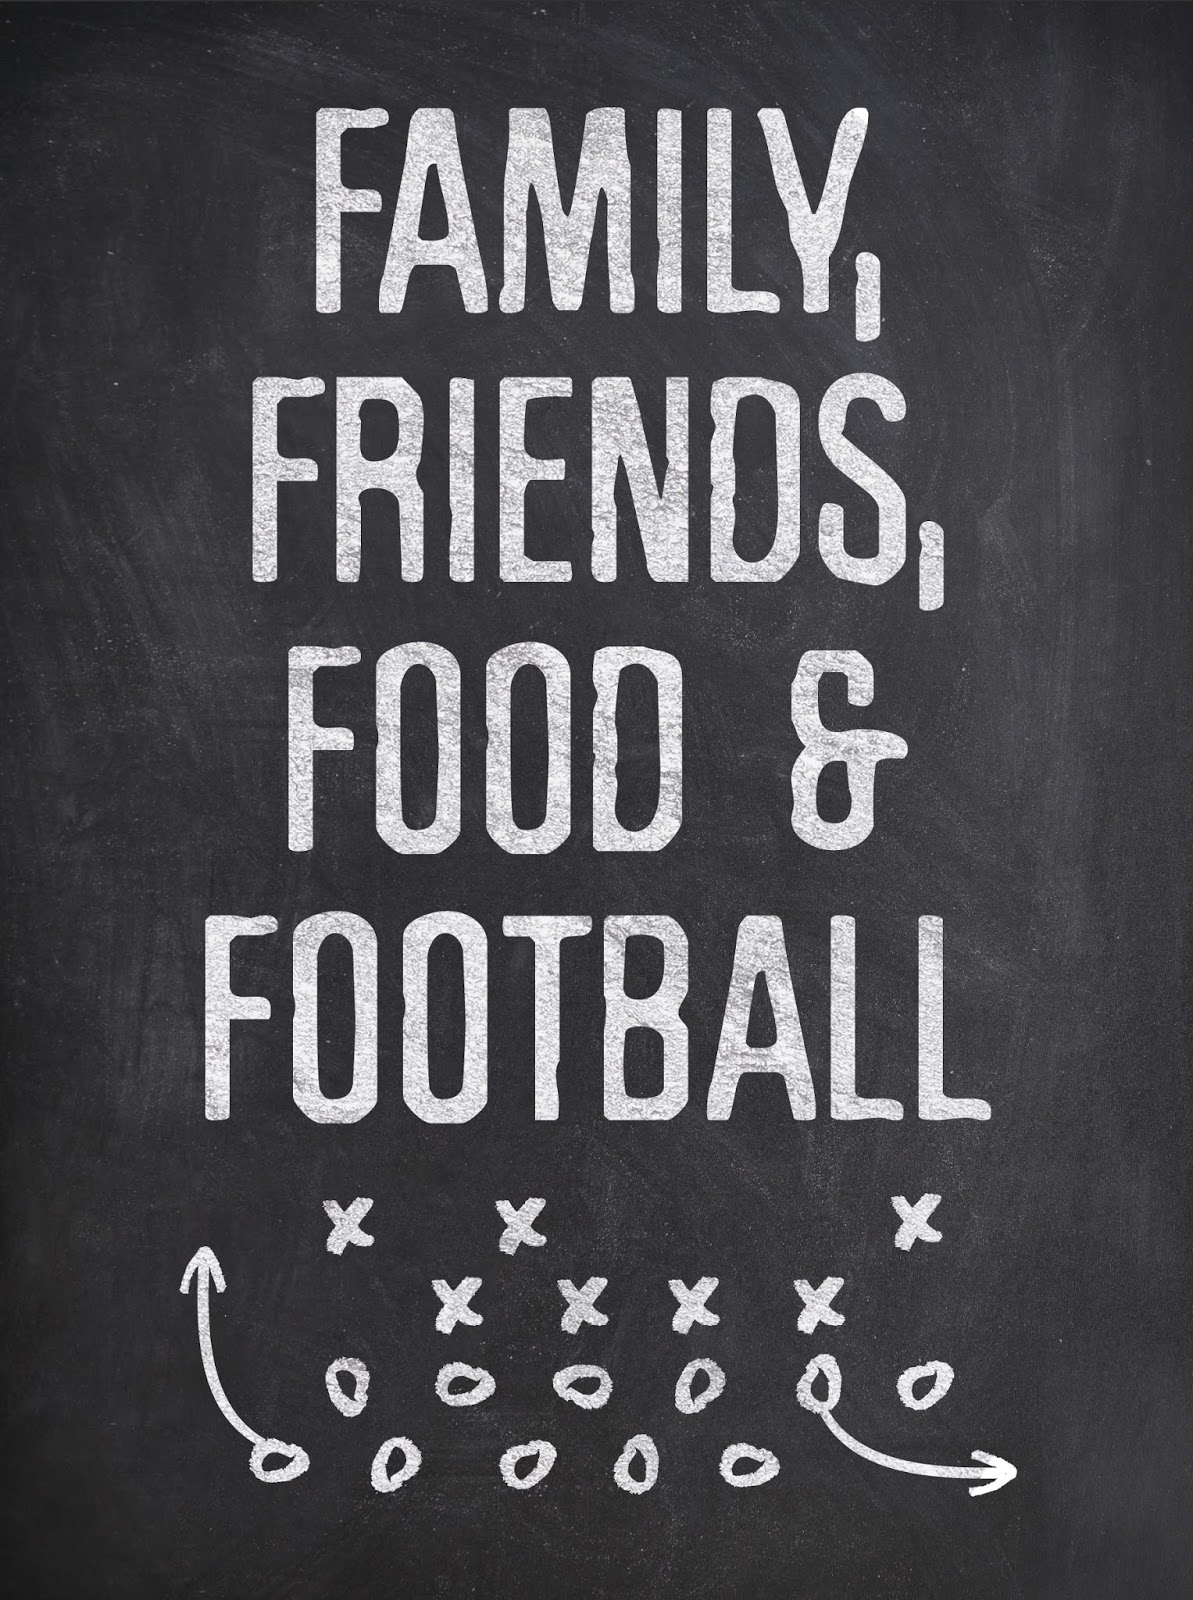 Family And Friends Quotes Nai'xyy Male Hank Williams Jr Music Artist Monday Night Football .